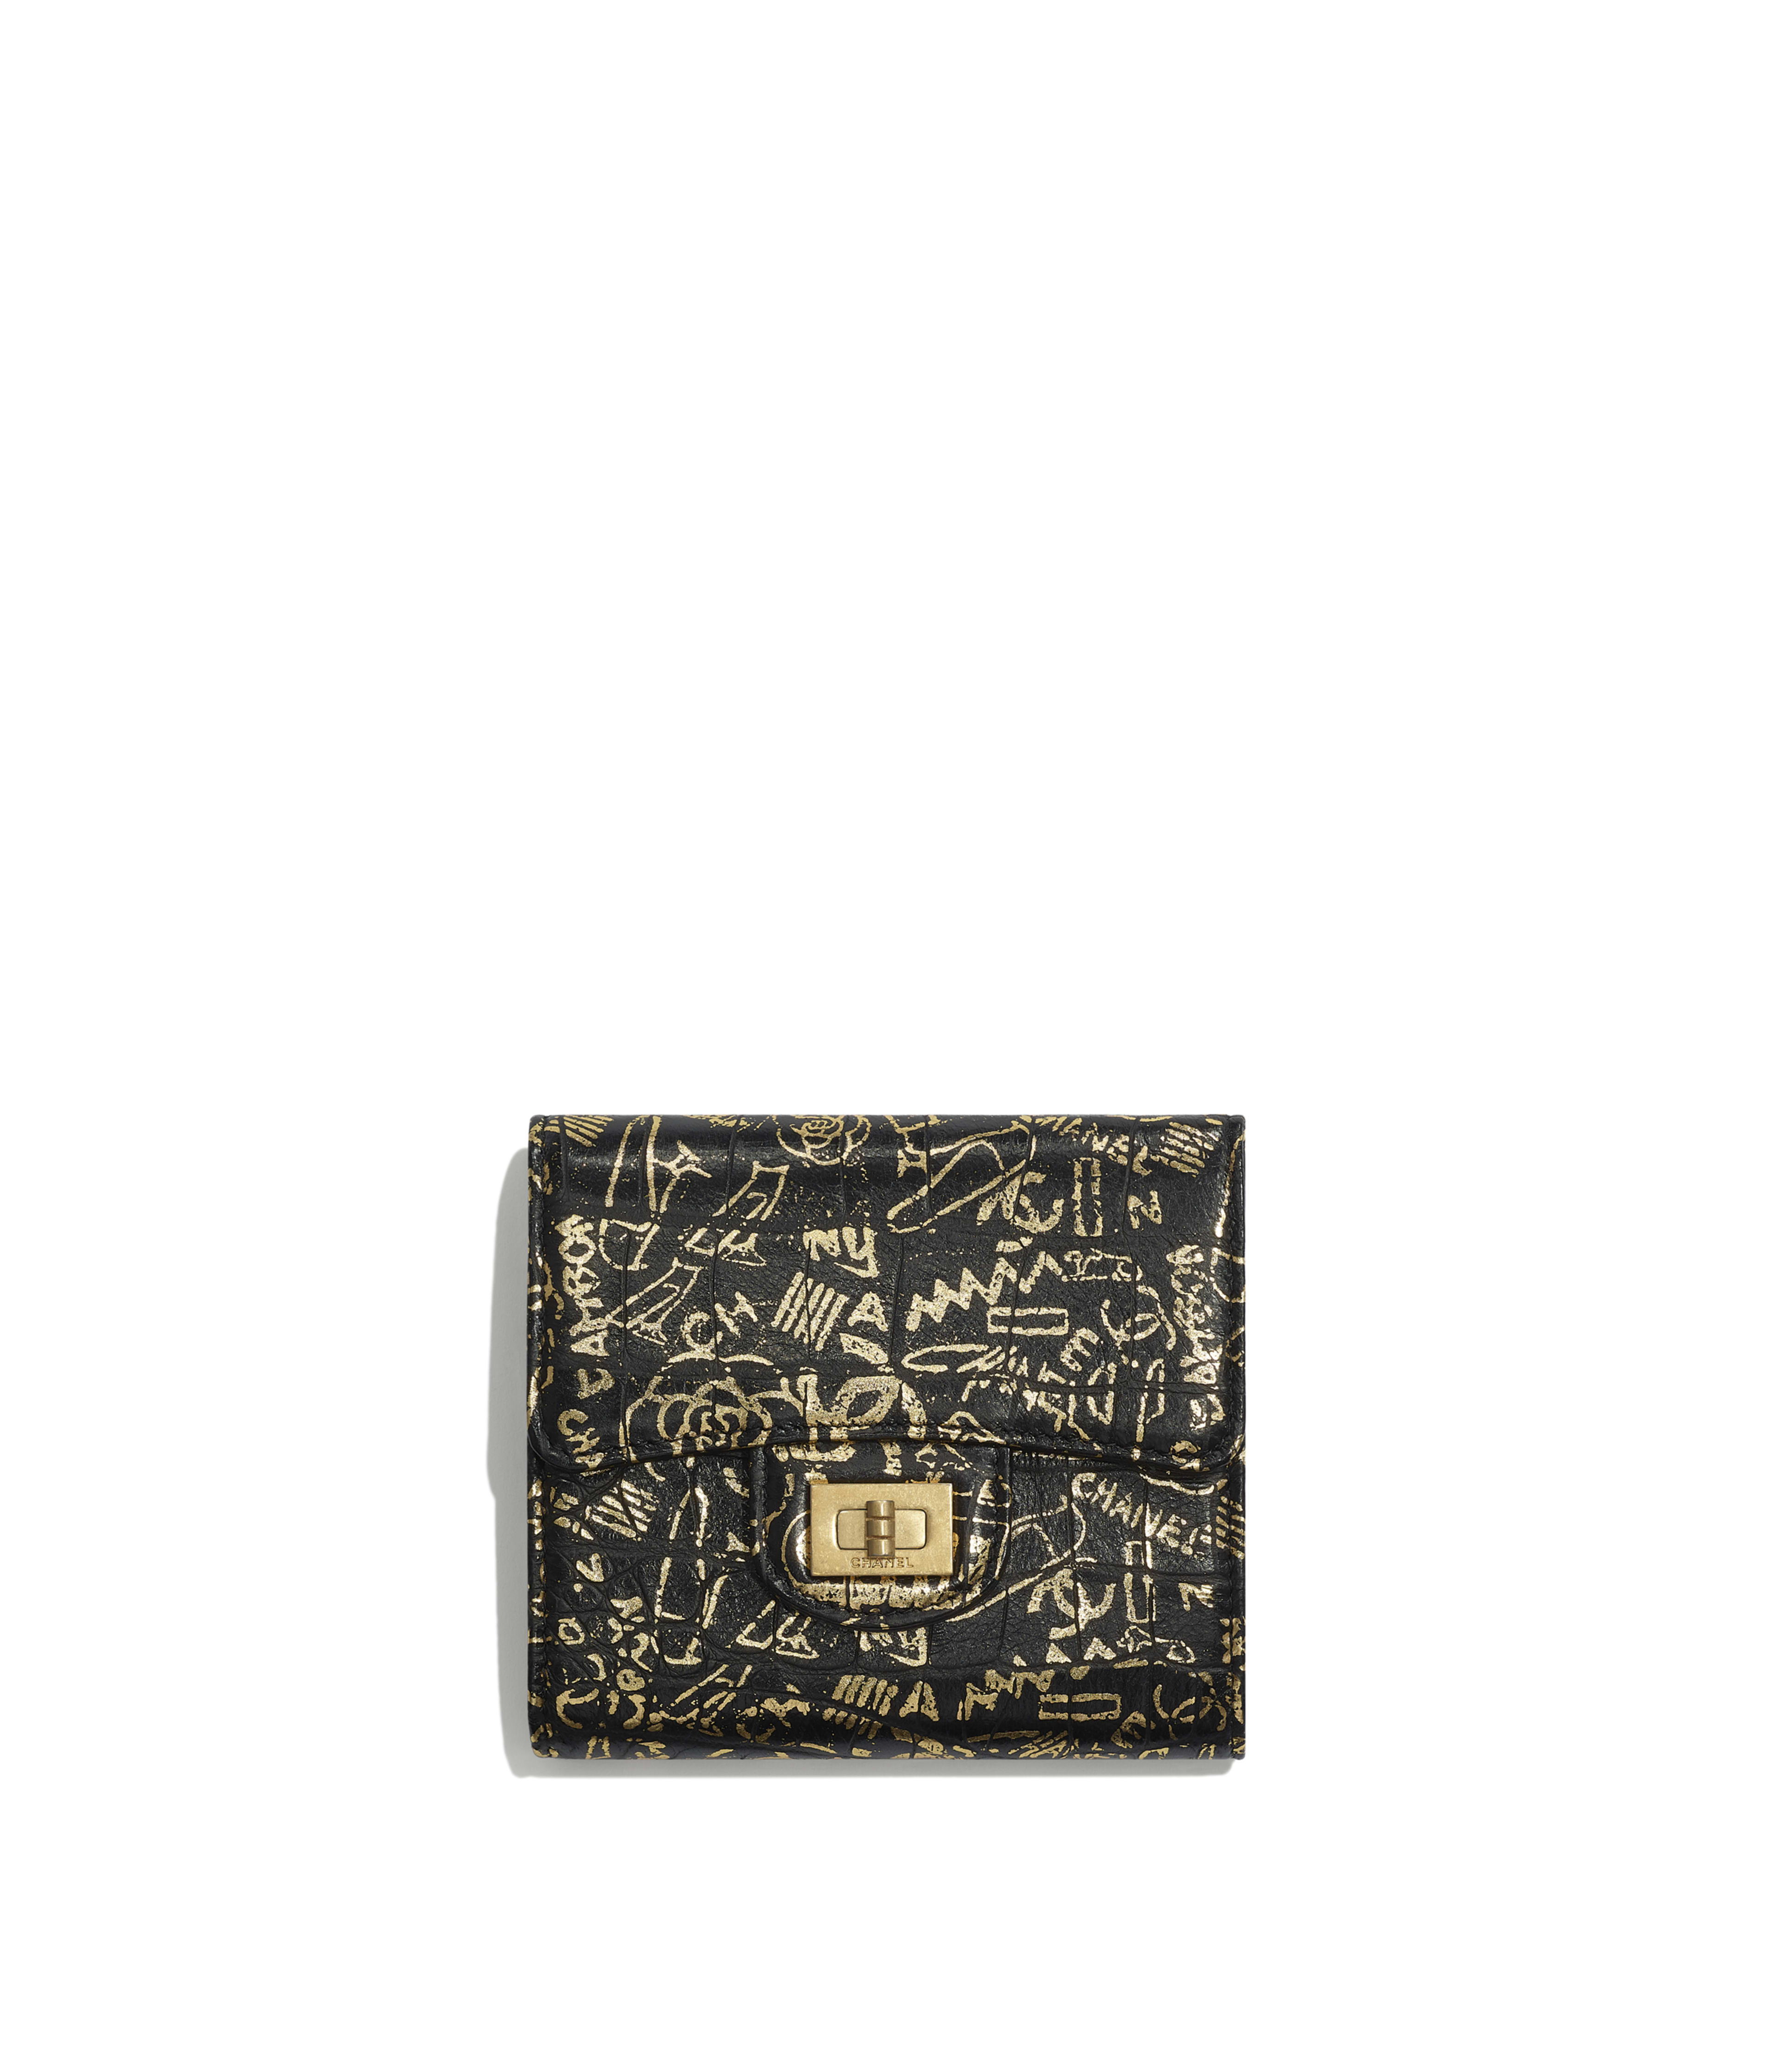 3a664fb80ad937 2.55 Small Flap Wallet Crocodile Embossed Printed Leather & Gold-Tone  Metal, Black & Gold Ref. A80832B00979N0784